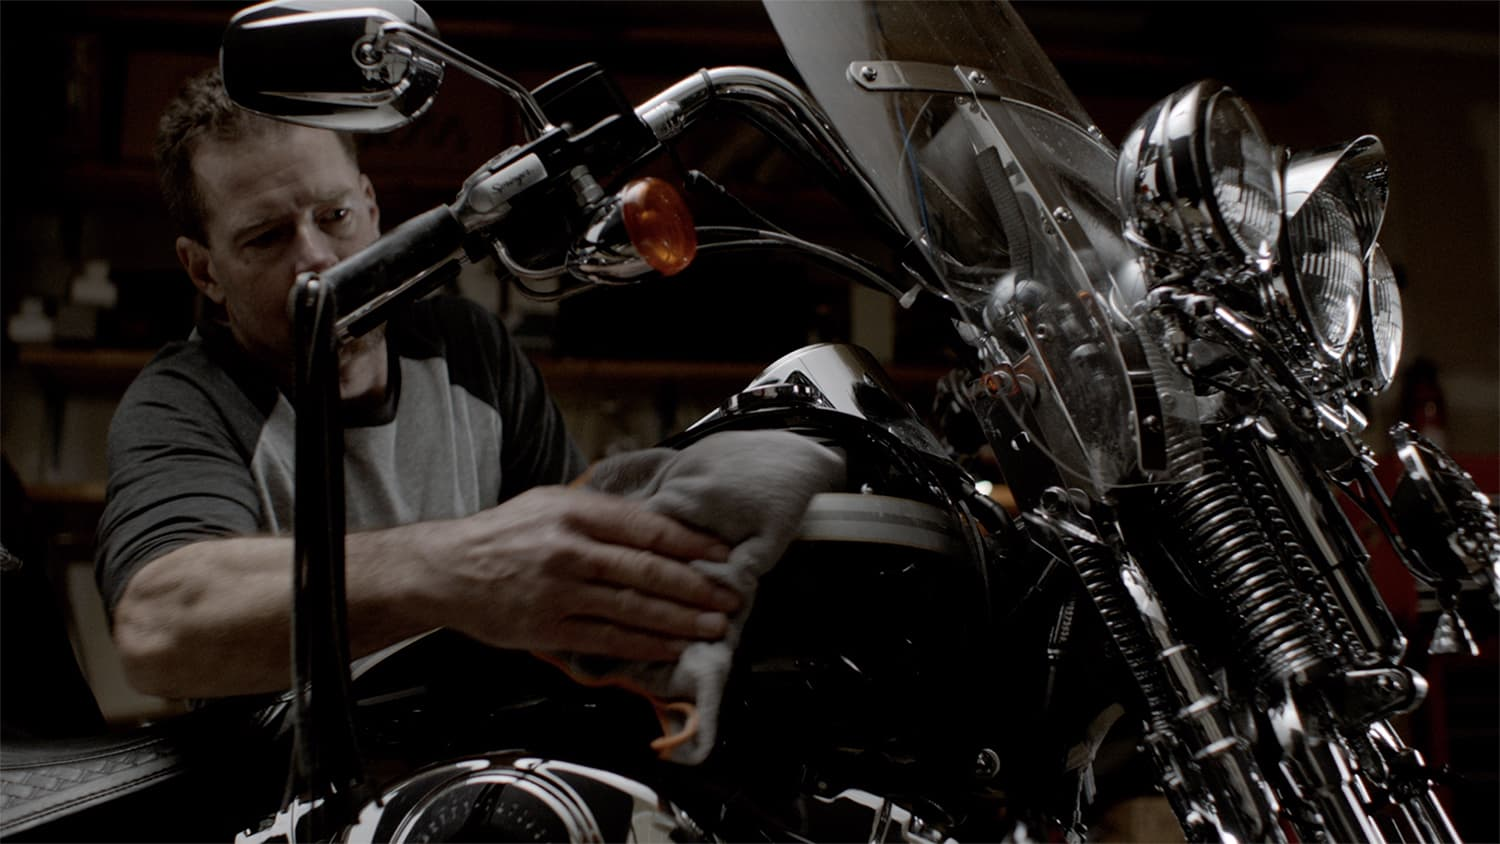 Indian Motorcycle - Choice is Coming